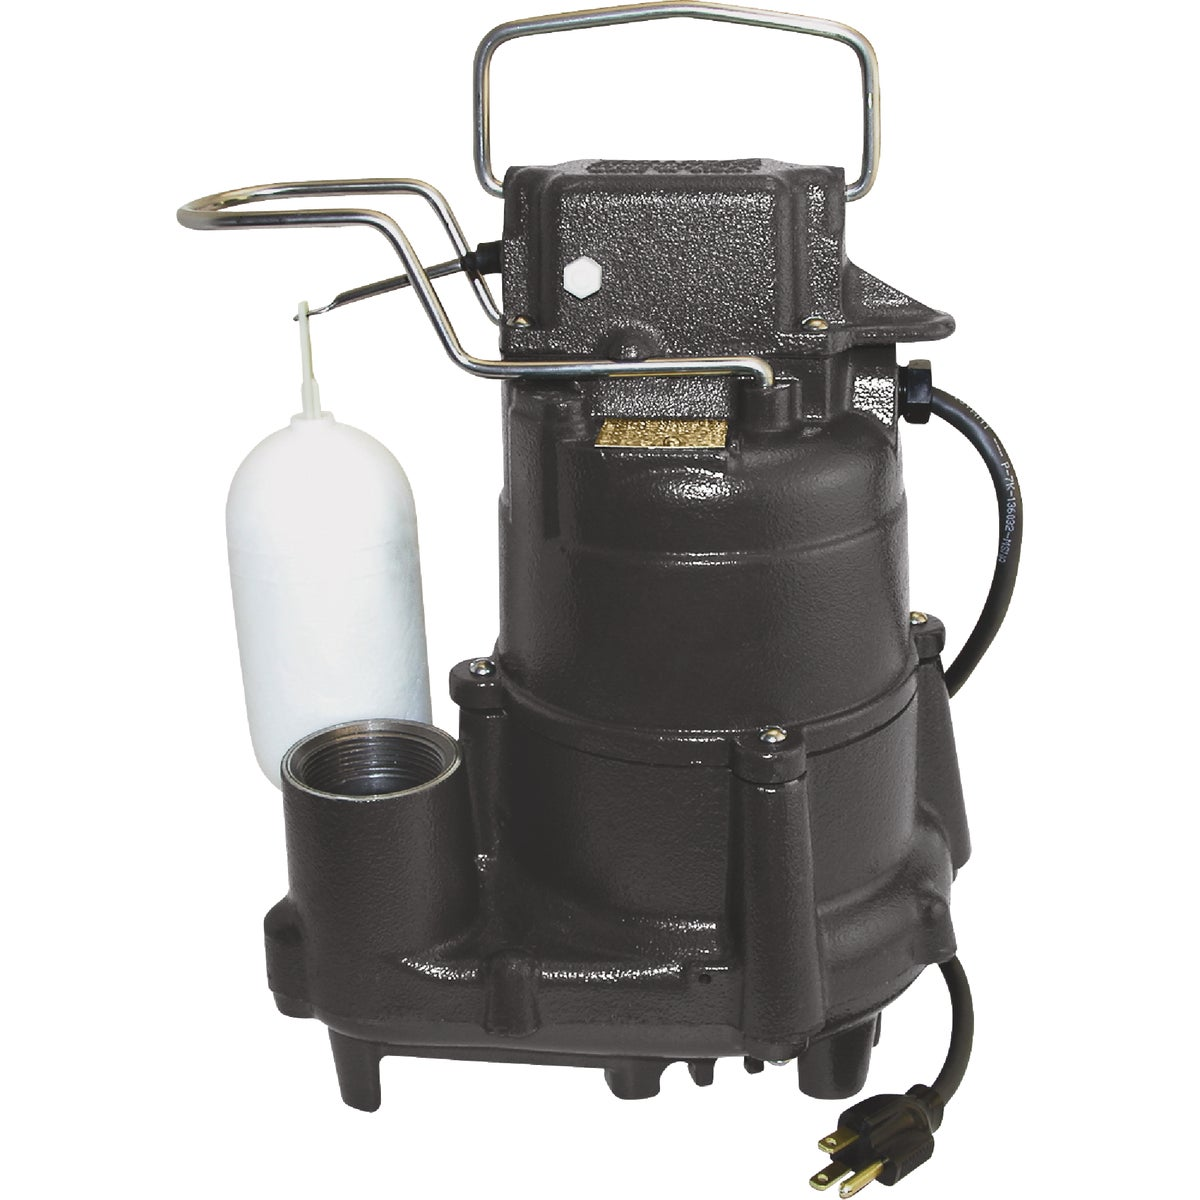 1/2HP CAST SUB SUMP PUMP